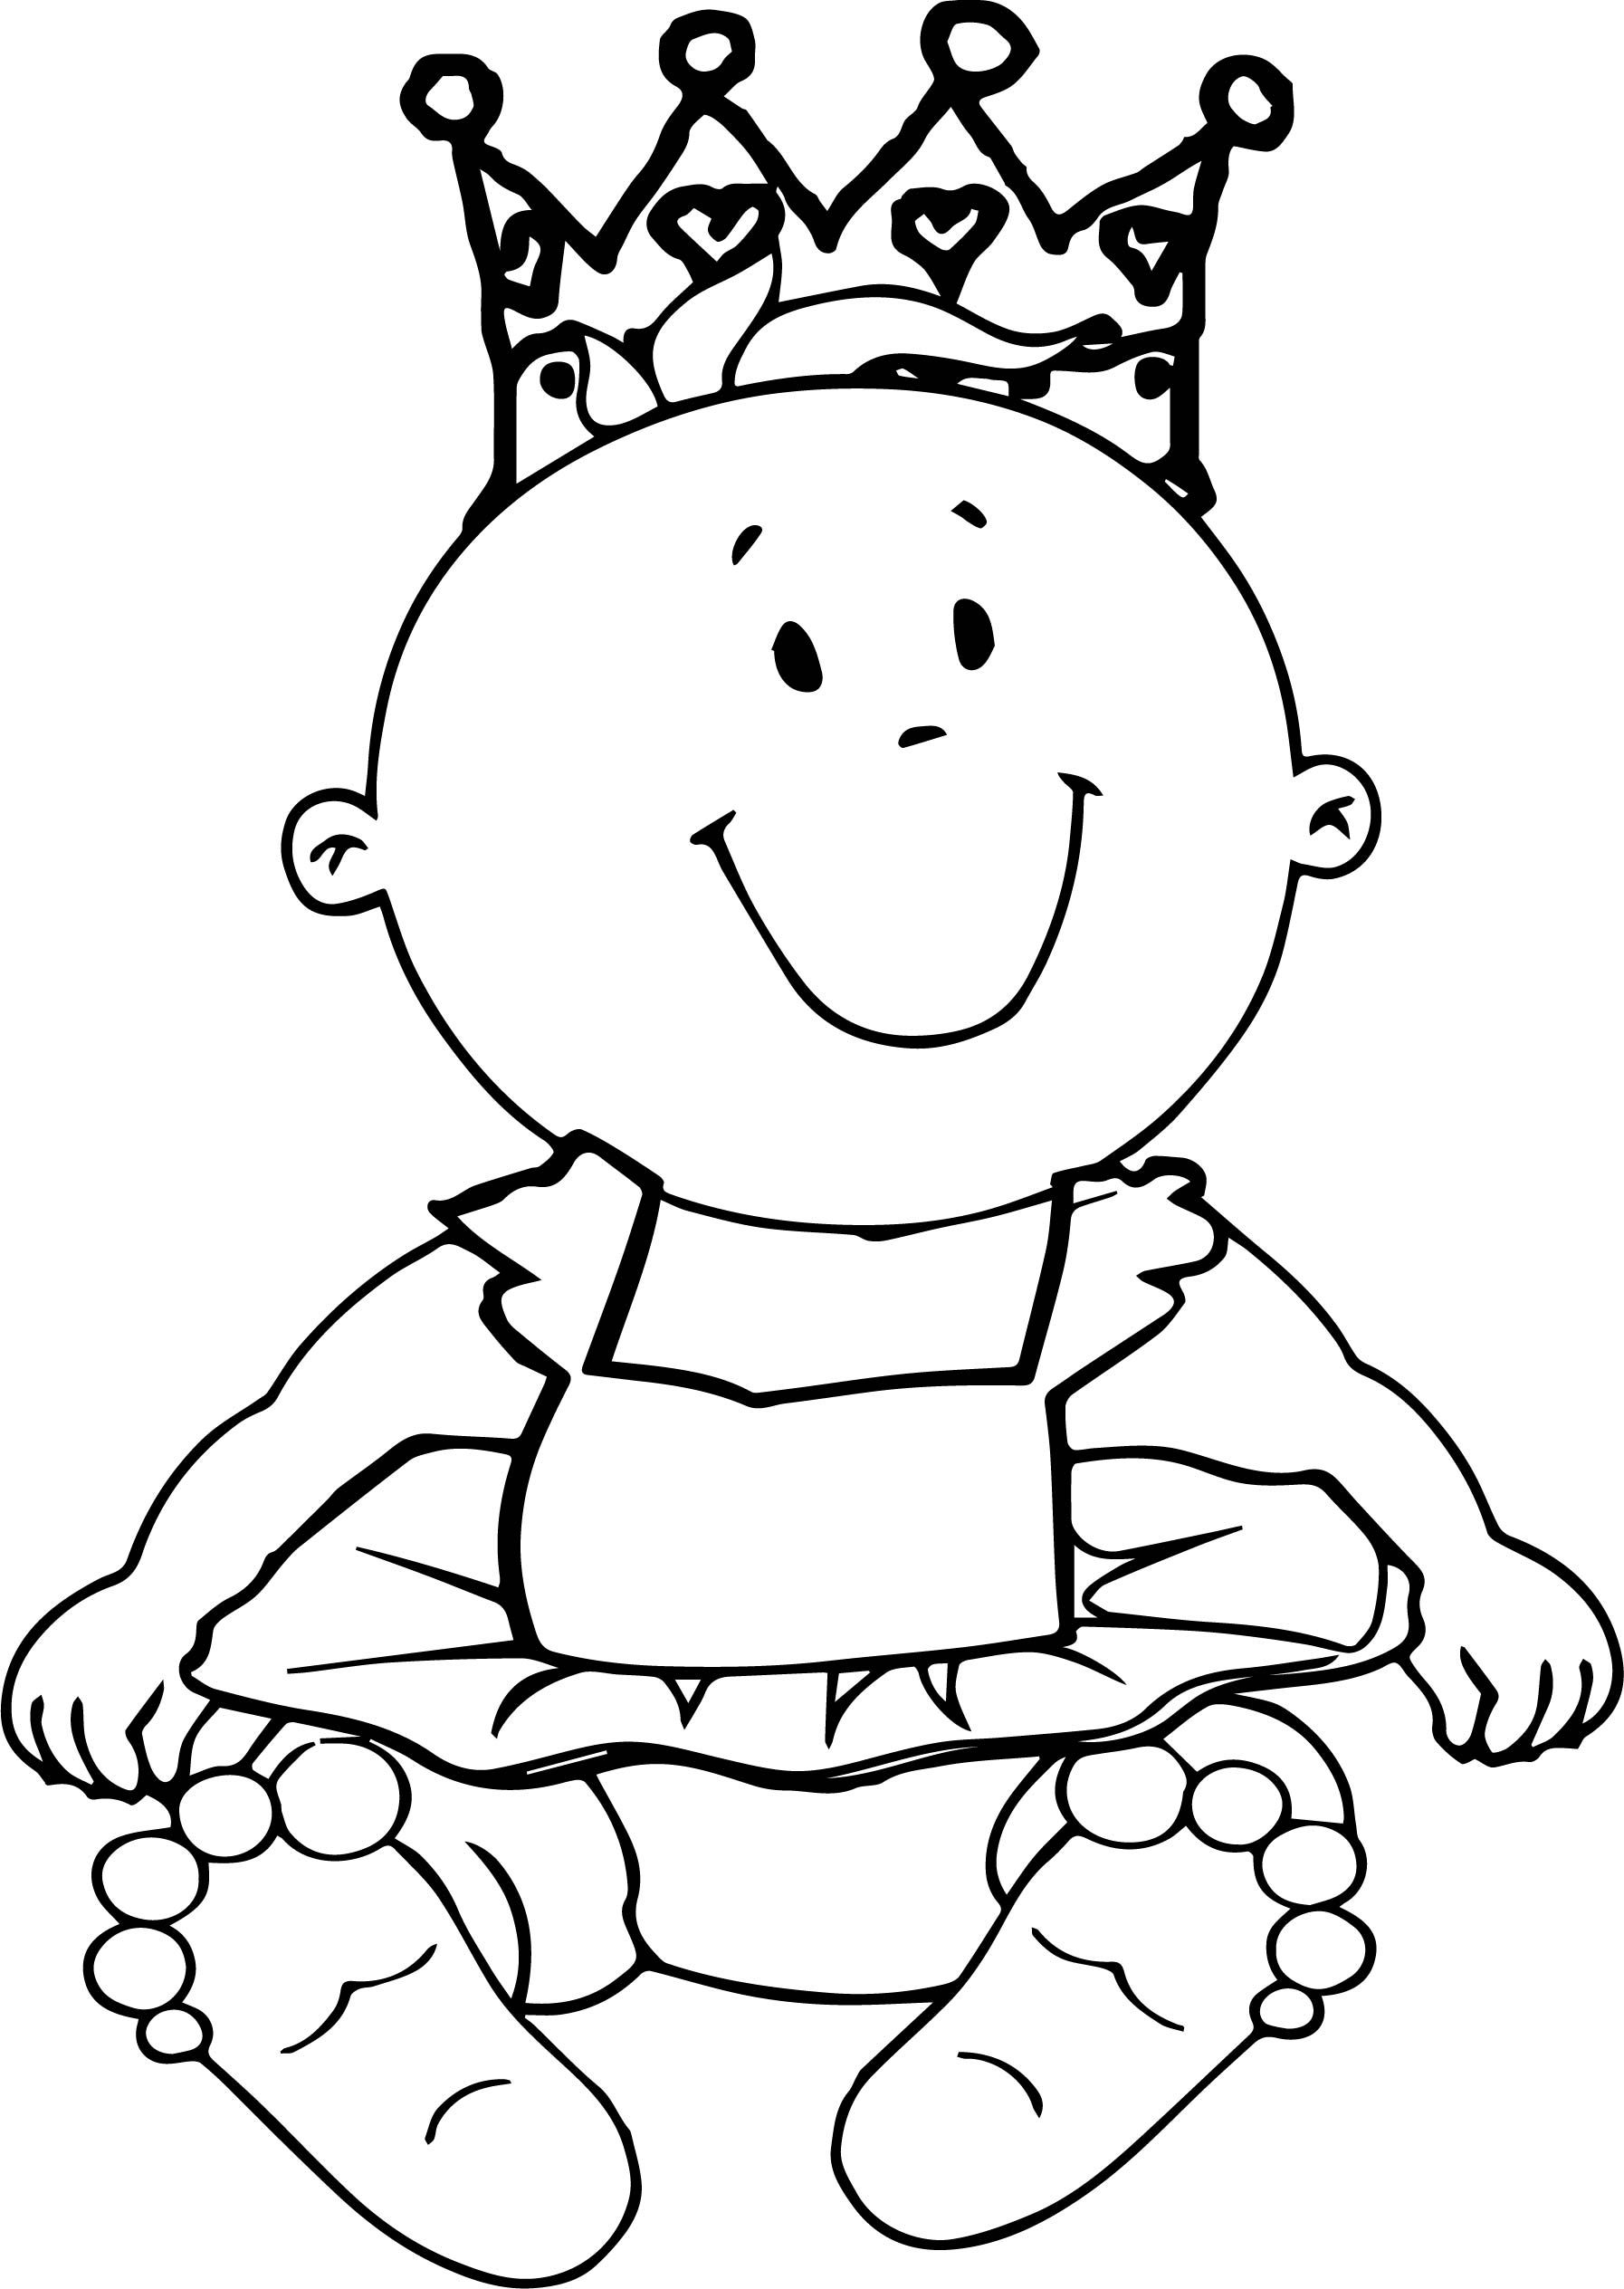 Prince Baby Boy Coloring Page | Coloring pages for boys ...